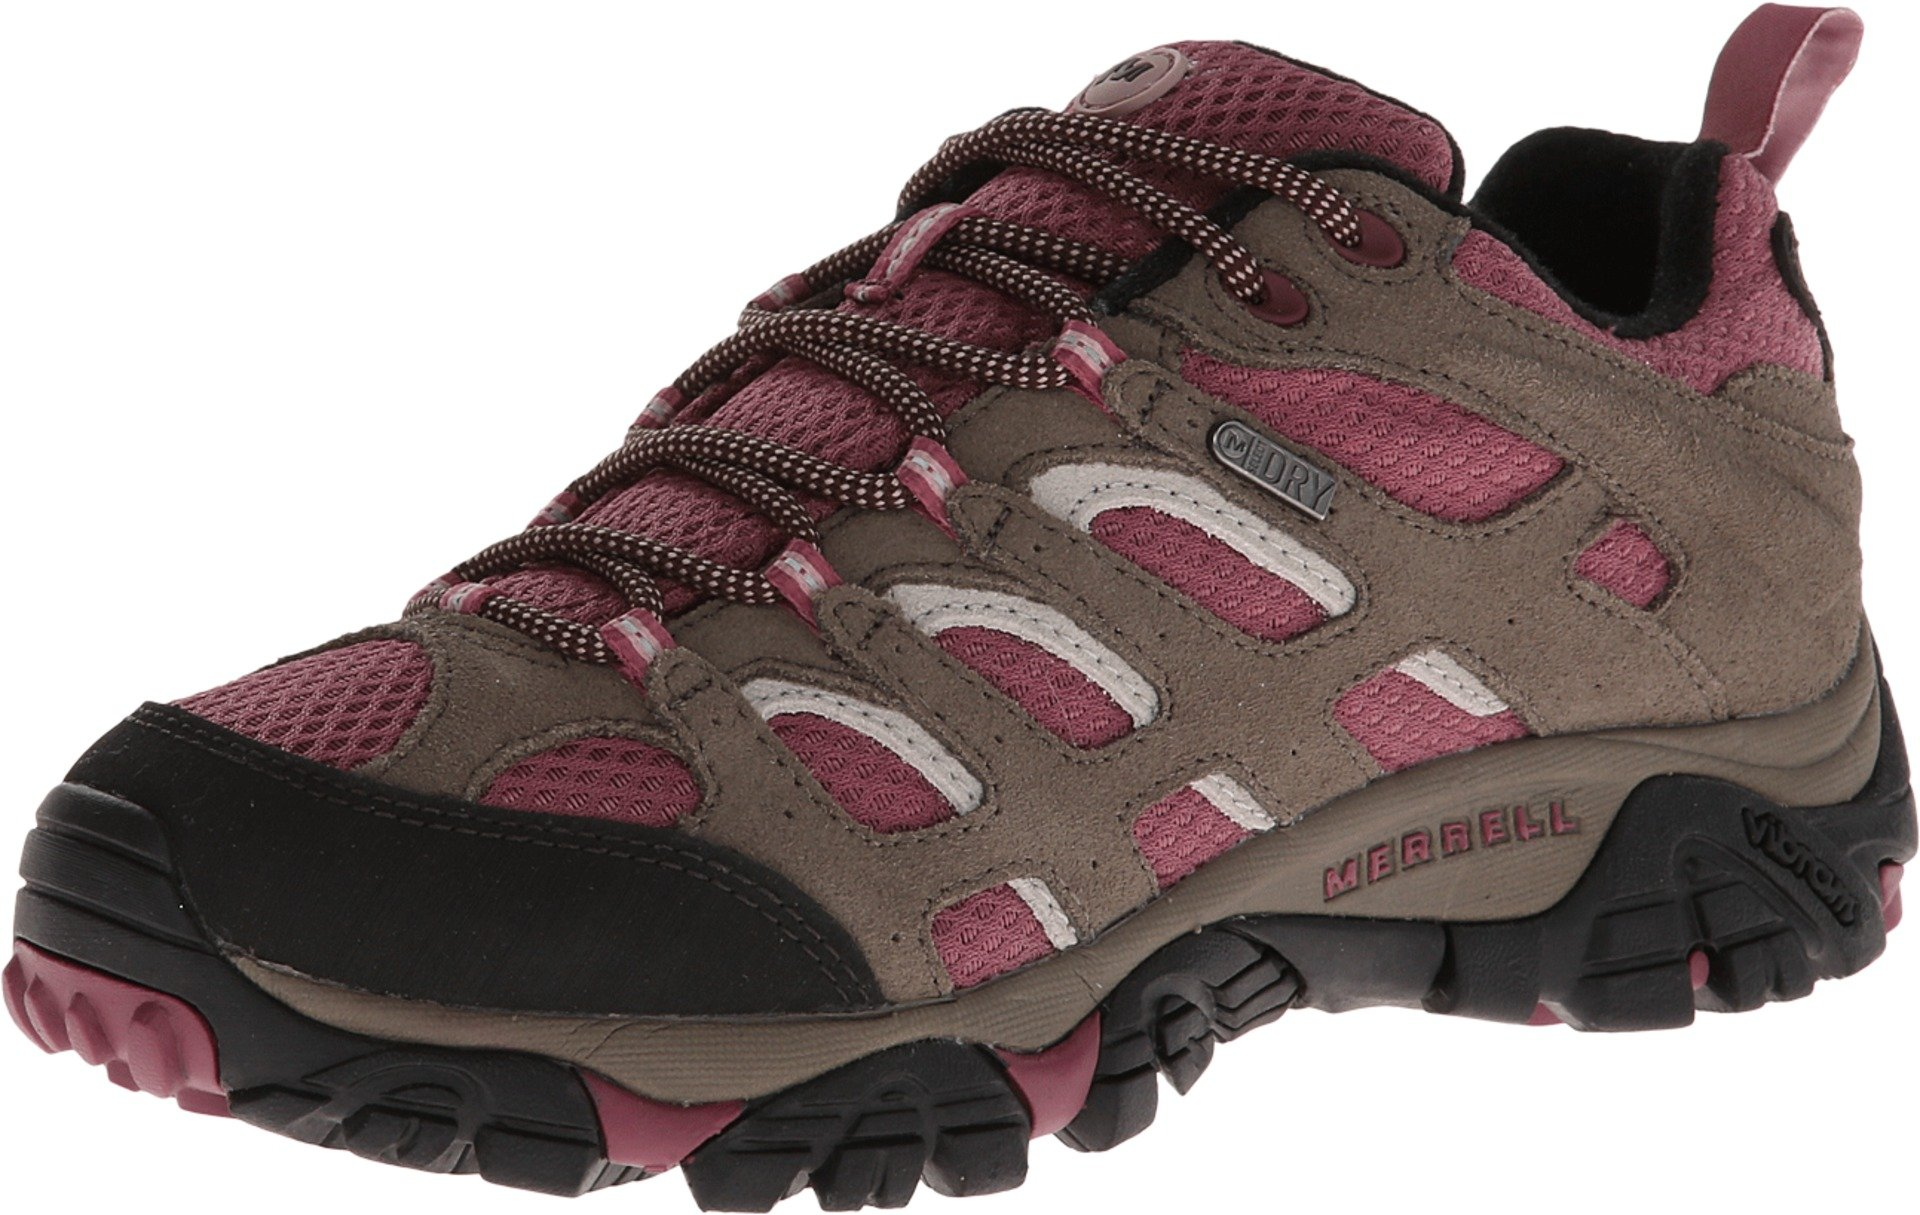 Merrell Women's Moab Waterproof Hiking Shoe,Boulder/Blush,7 M US